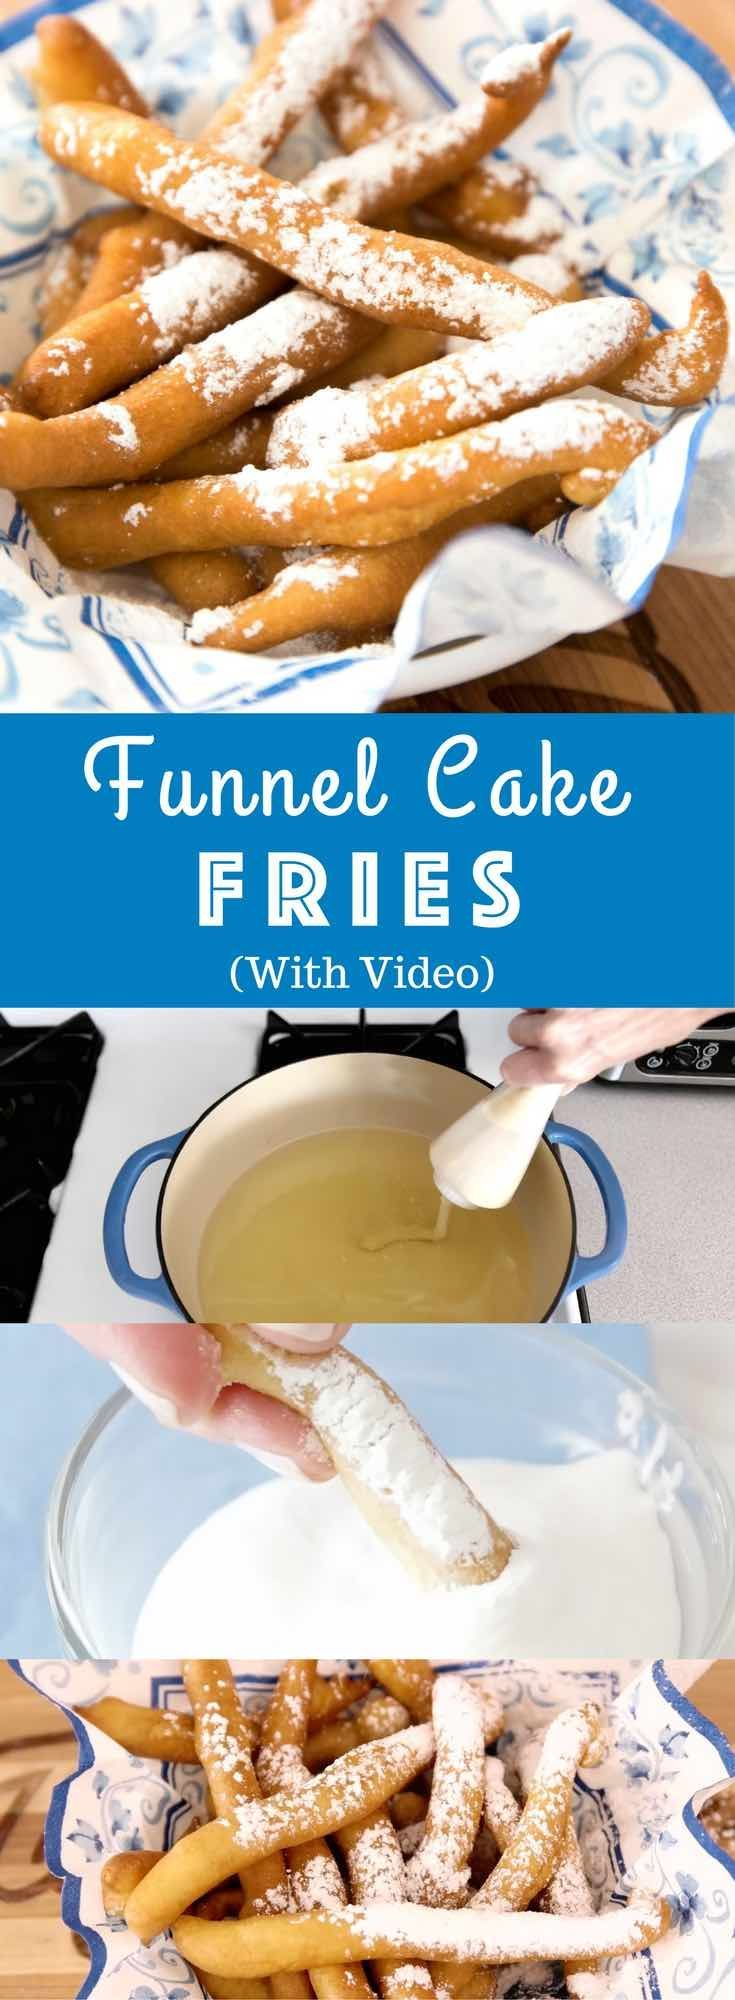 Easy funnel cake fries delicious cake batter is fried to